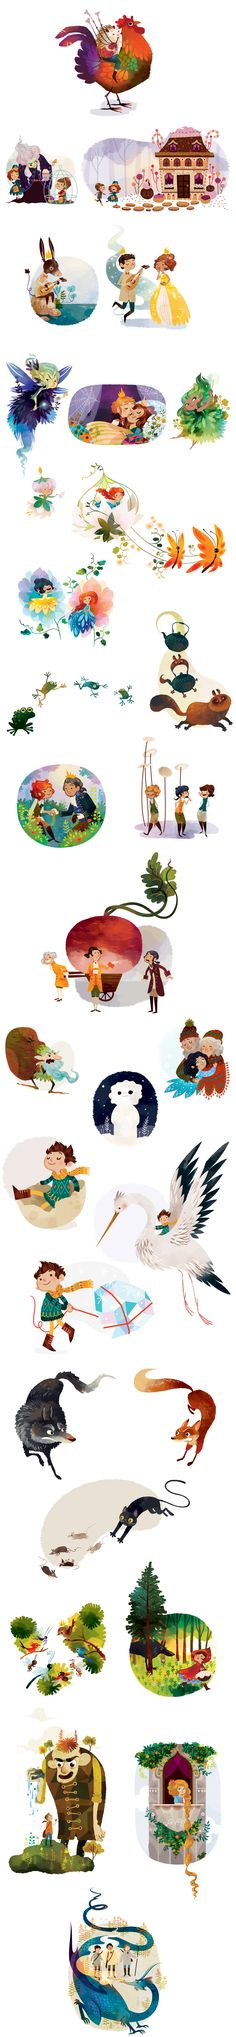 "A seleccion of vignettes for ""Hanz the Hedgehog"", ""Hansel and Gretel"", ""The Turnip"", ""The twelve Huntsmen"", ""The Sleeping Beauty"" and other classic fairy tales."